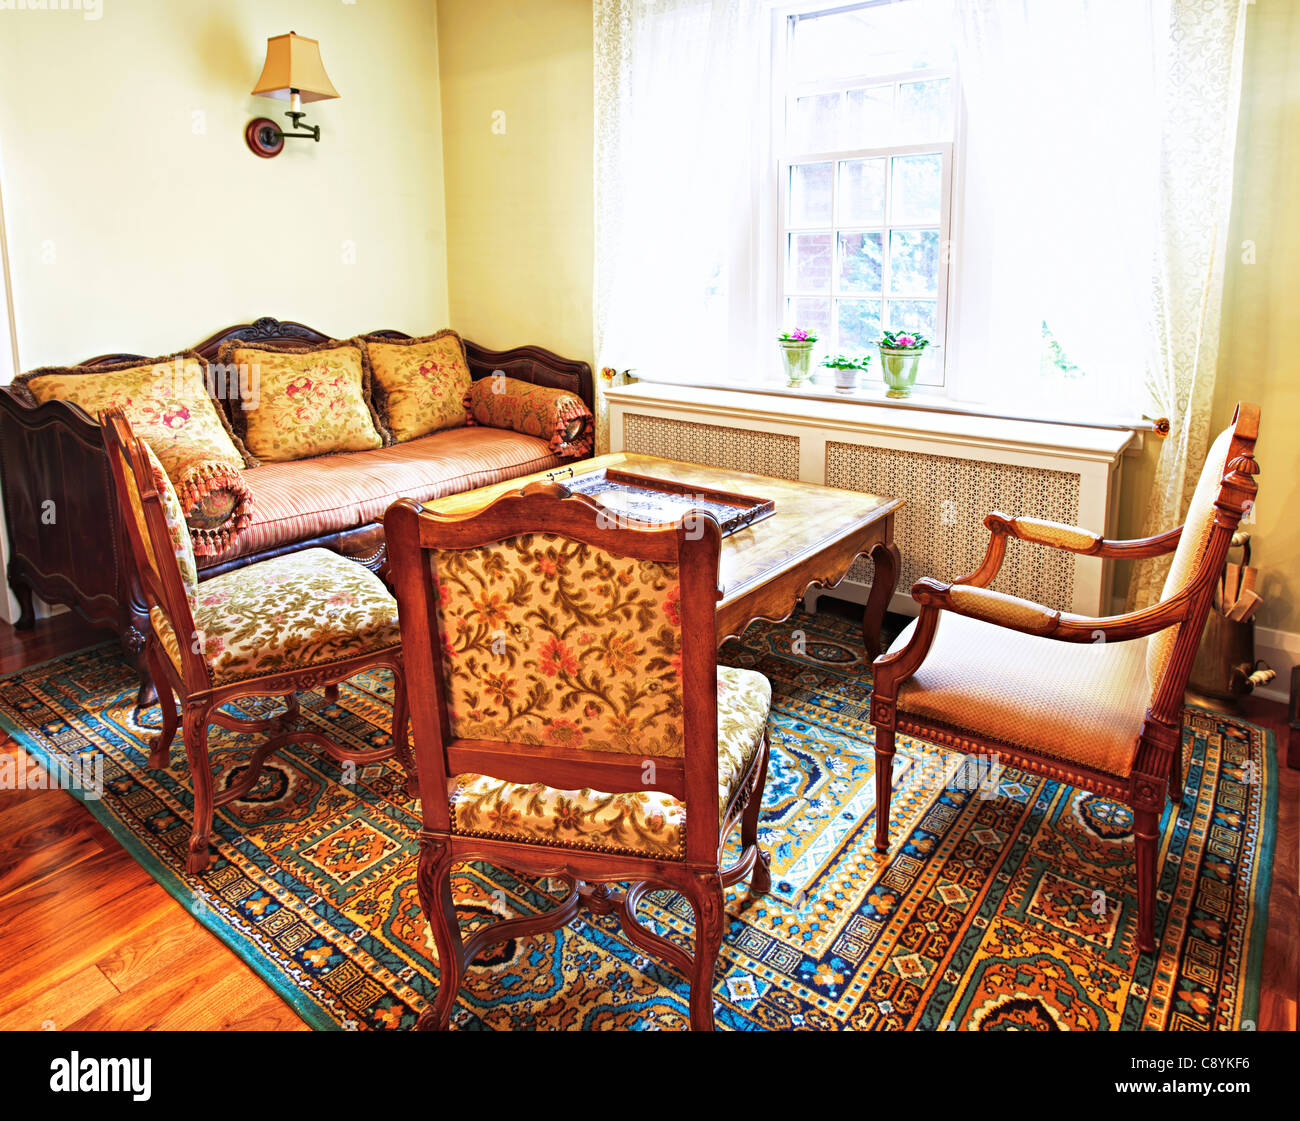 Antique furniture in living room interior of home - Stock Image